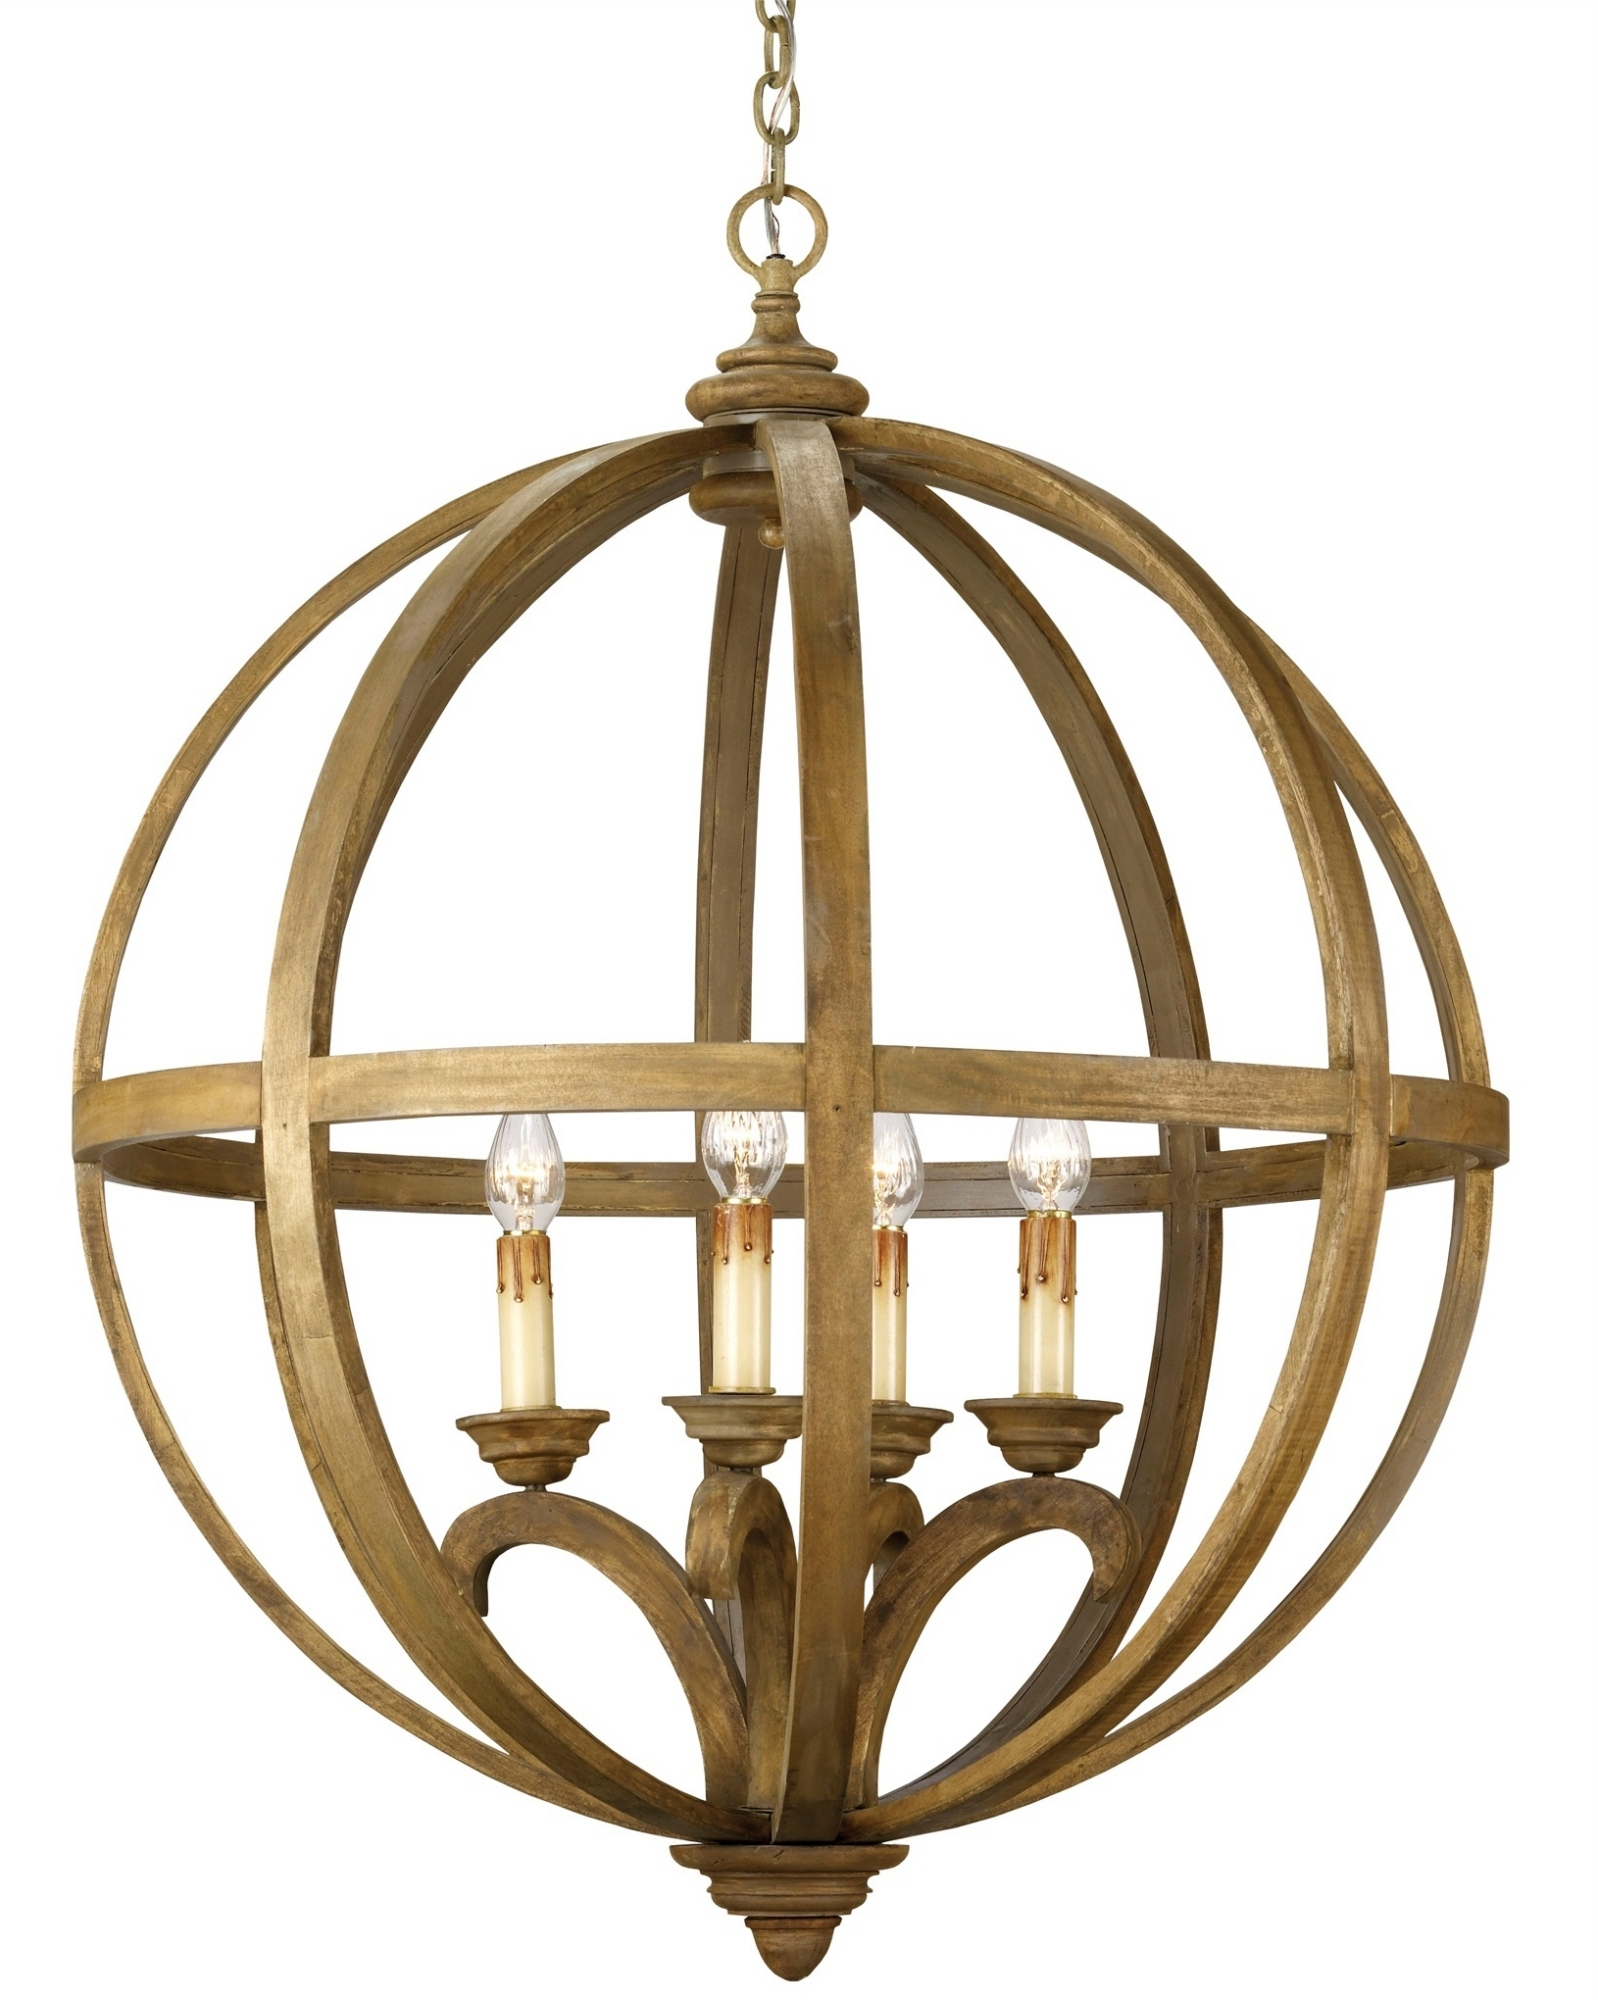 Orb Chandeliers With 2019 Axel Orb Chandelier Lighting (View 12 of 20)